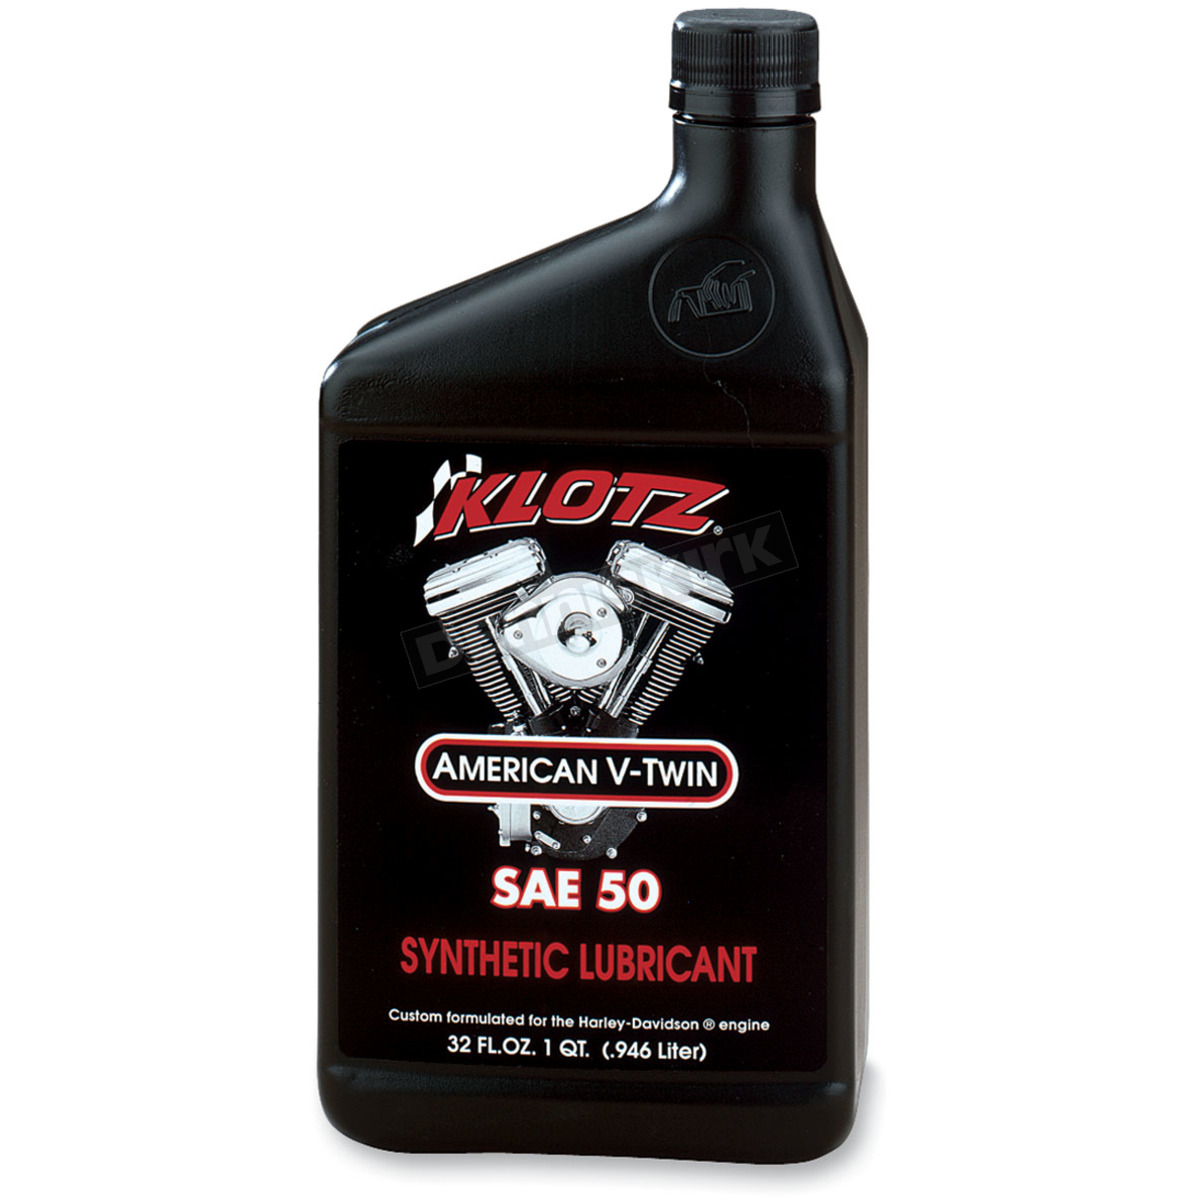 klotz v twin synthetic oil kh 50 harley davidson